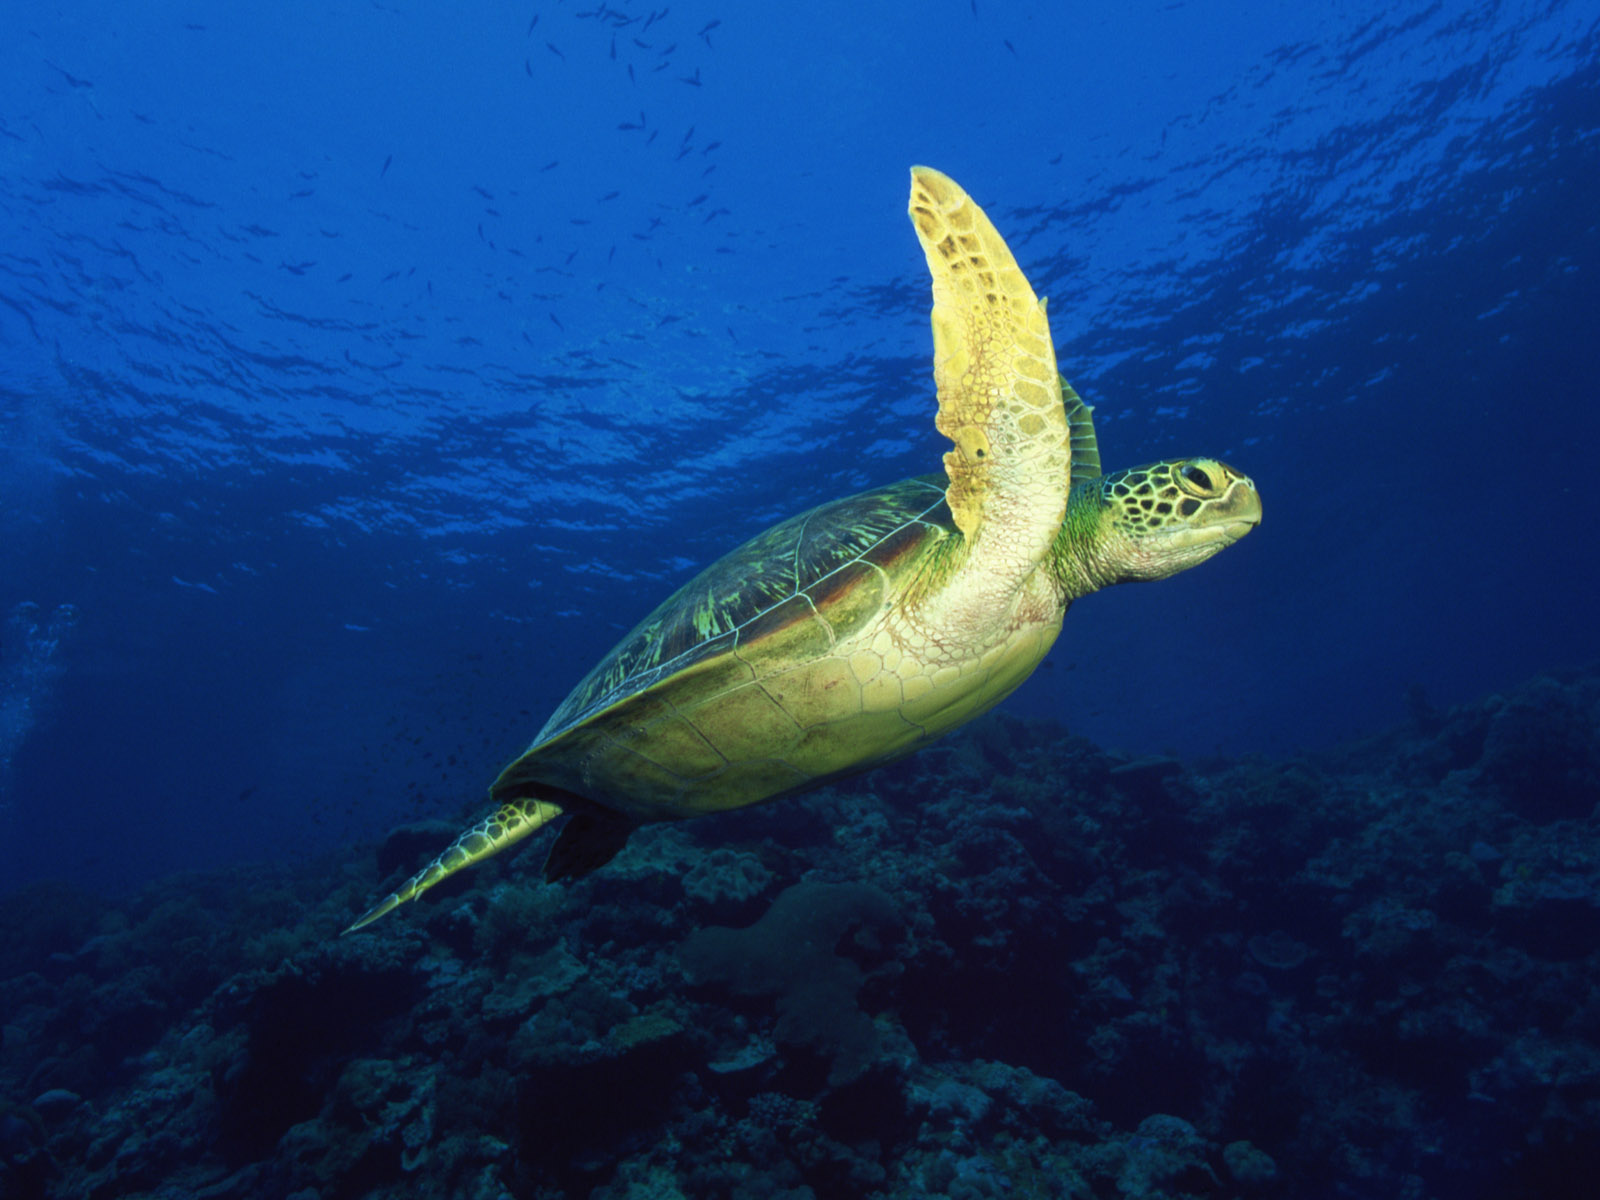 click to free download the wallpaper--Nature Landscape with Animals, a Sea Turtle in Free Swim, the Blue Sea